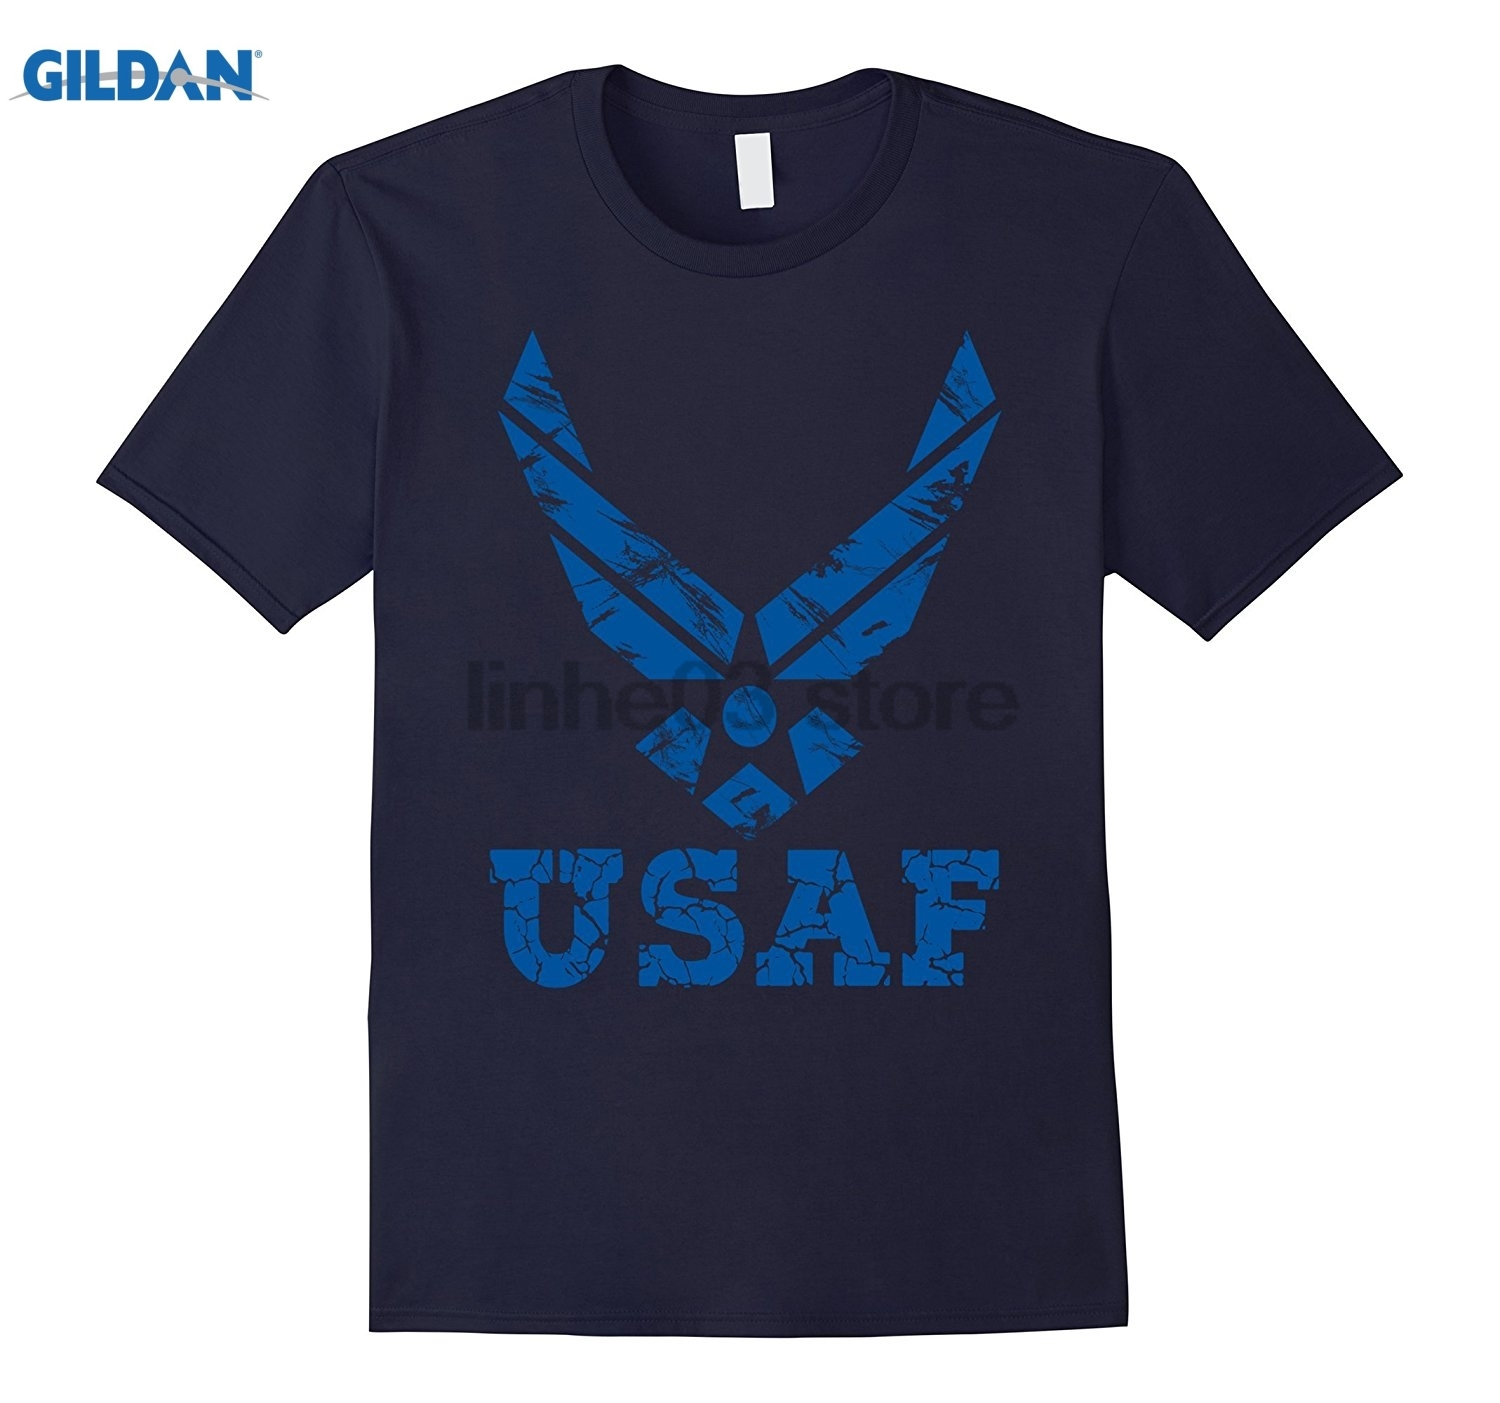 GILDAN U.S. AIR FORCE ORIGINAL USAF LOGO T-SHIRT Dress female T-shirt Mothers Day Ms. T- ...